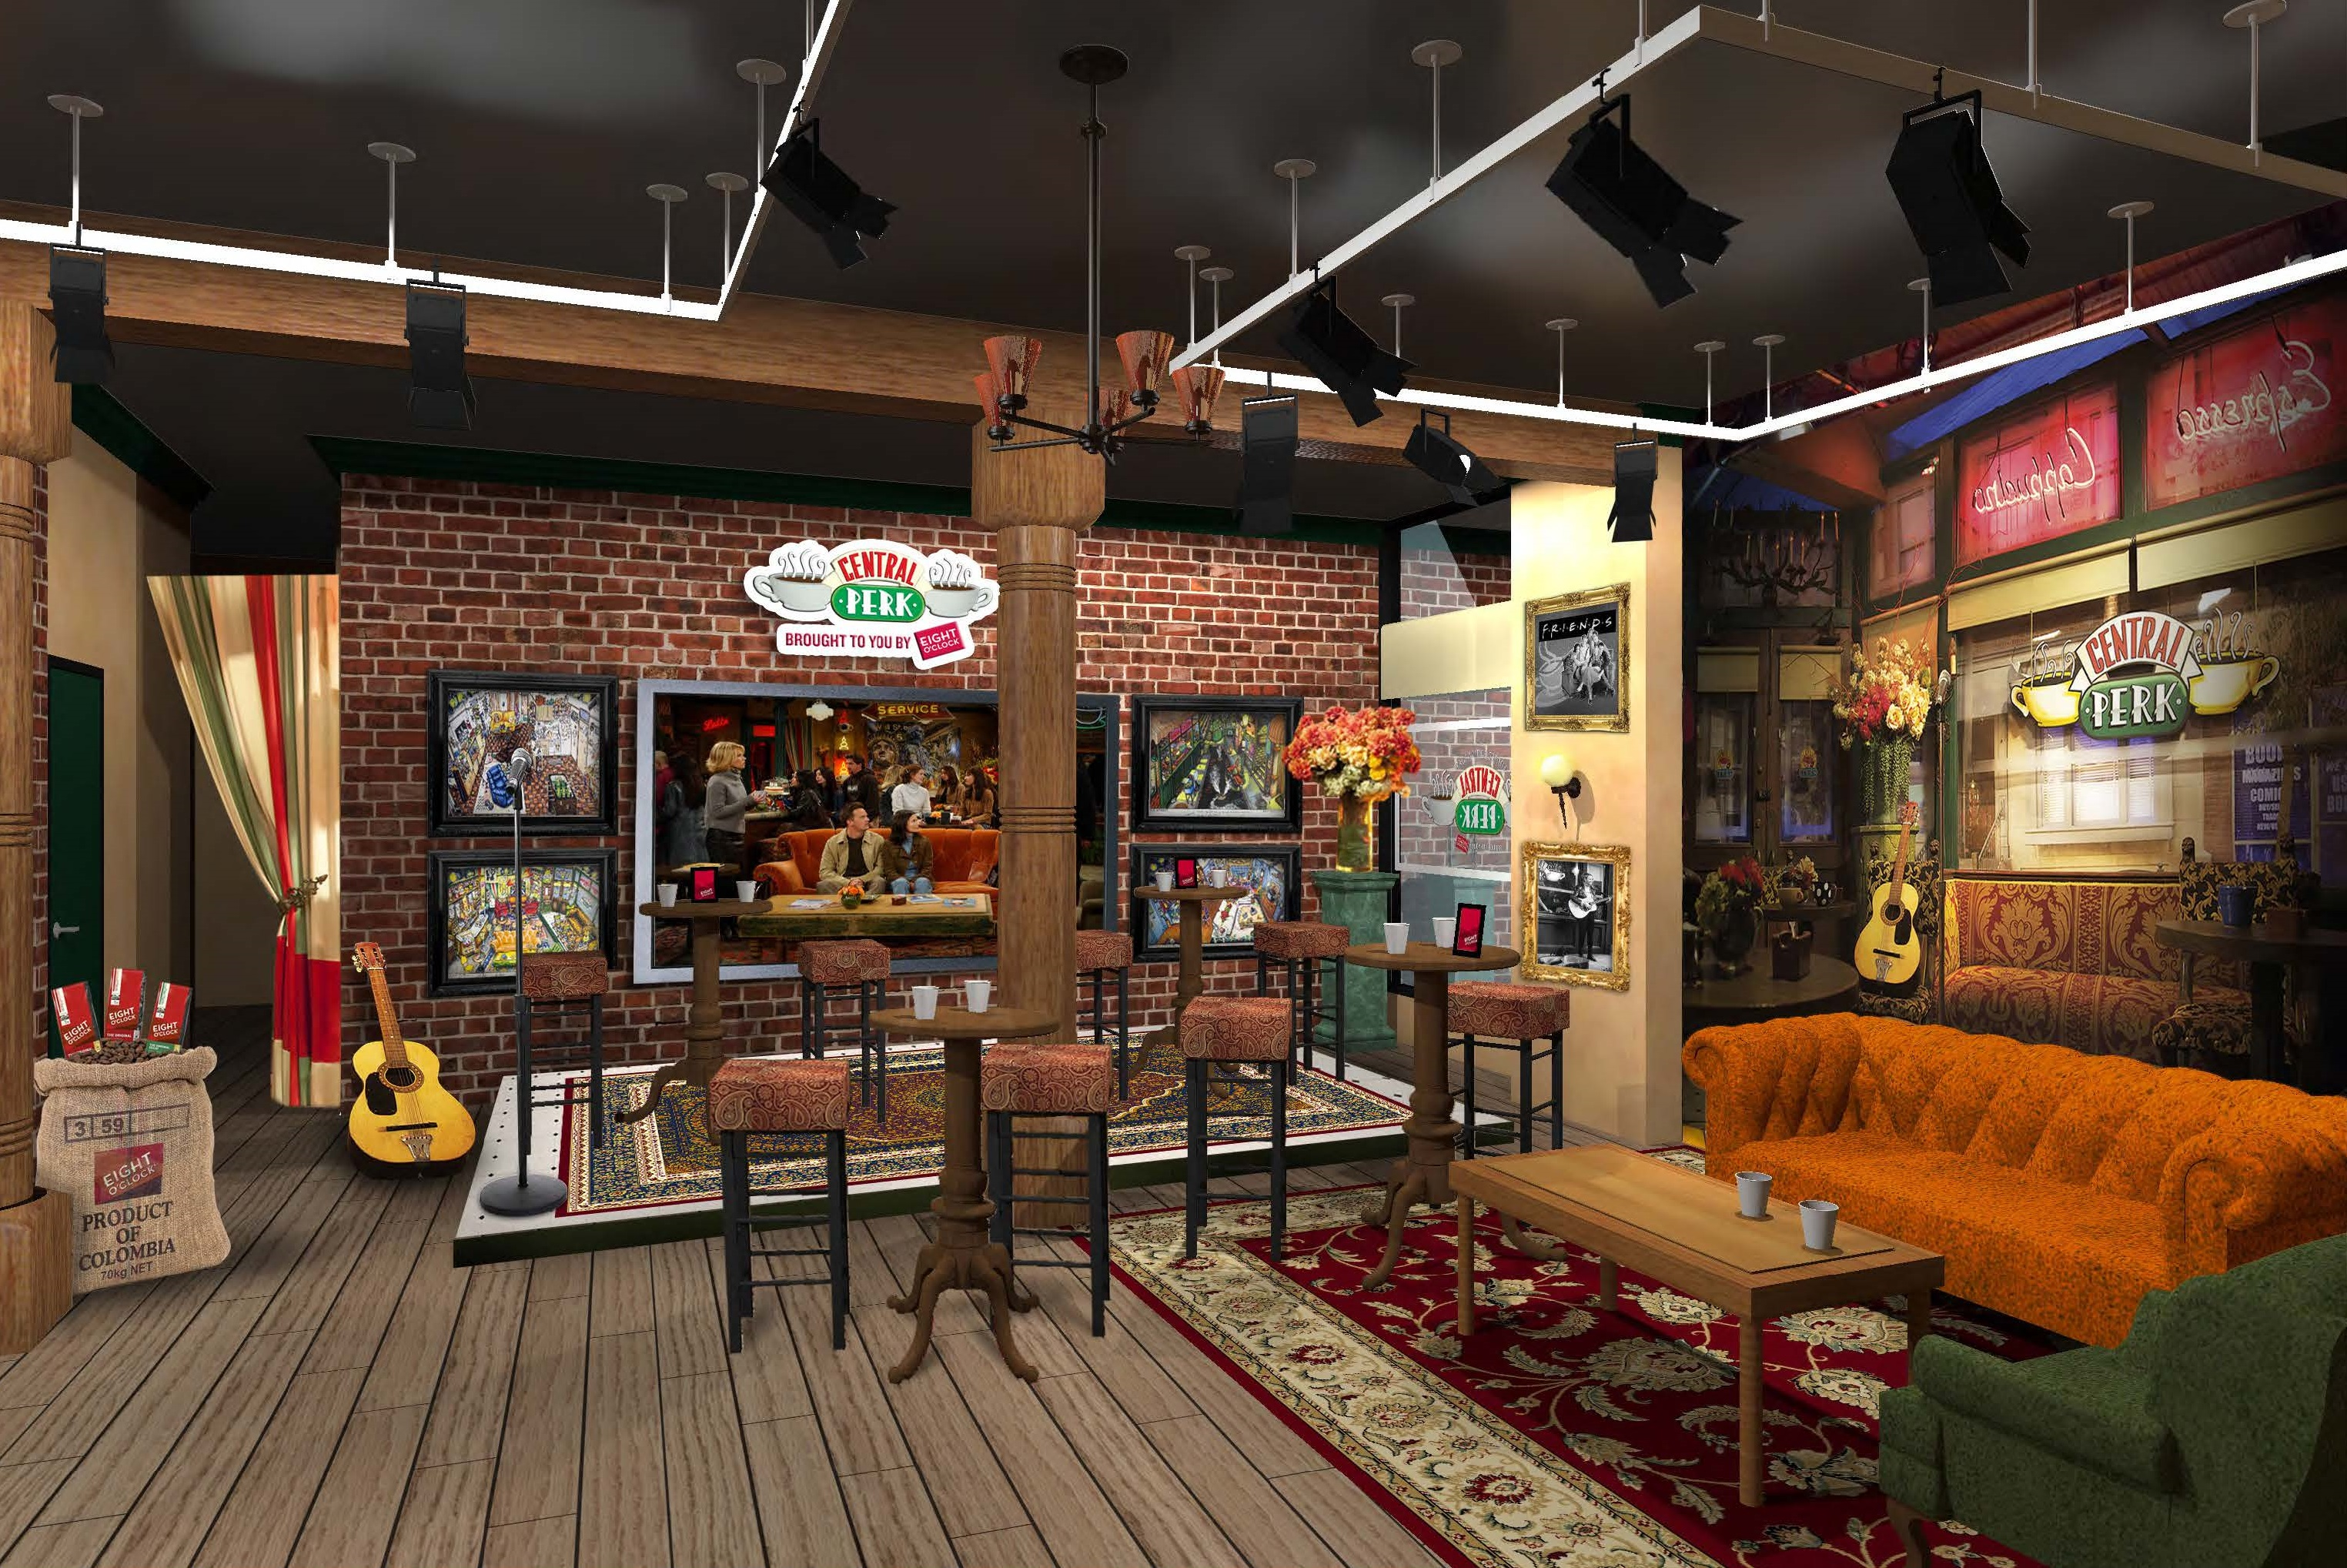 Central Perk Coffee Shop From The Television Show Friends To Open In New York For Shows